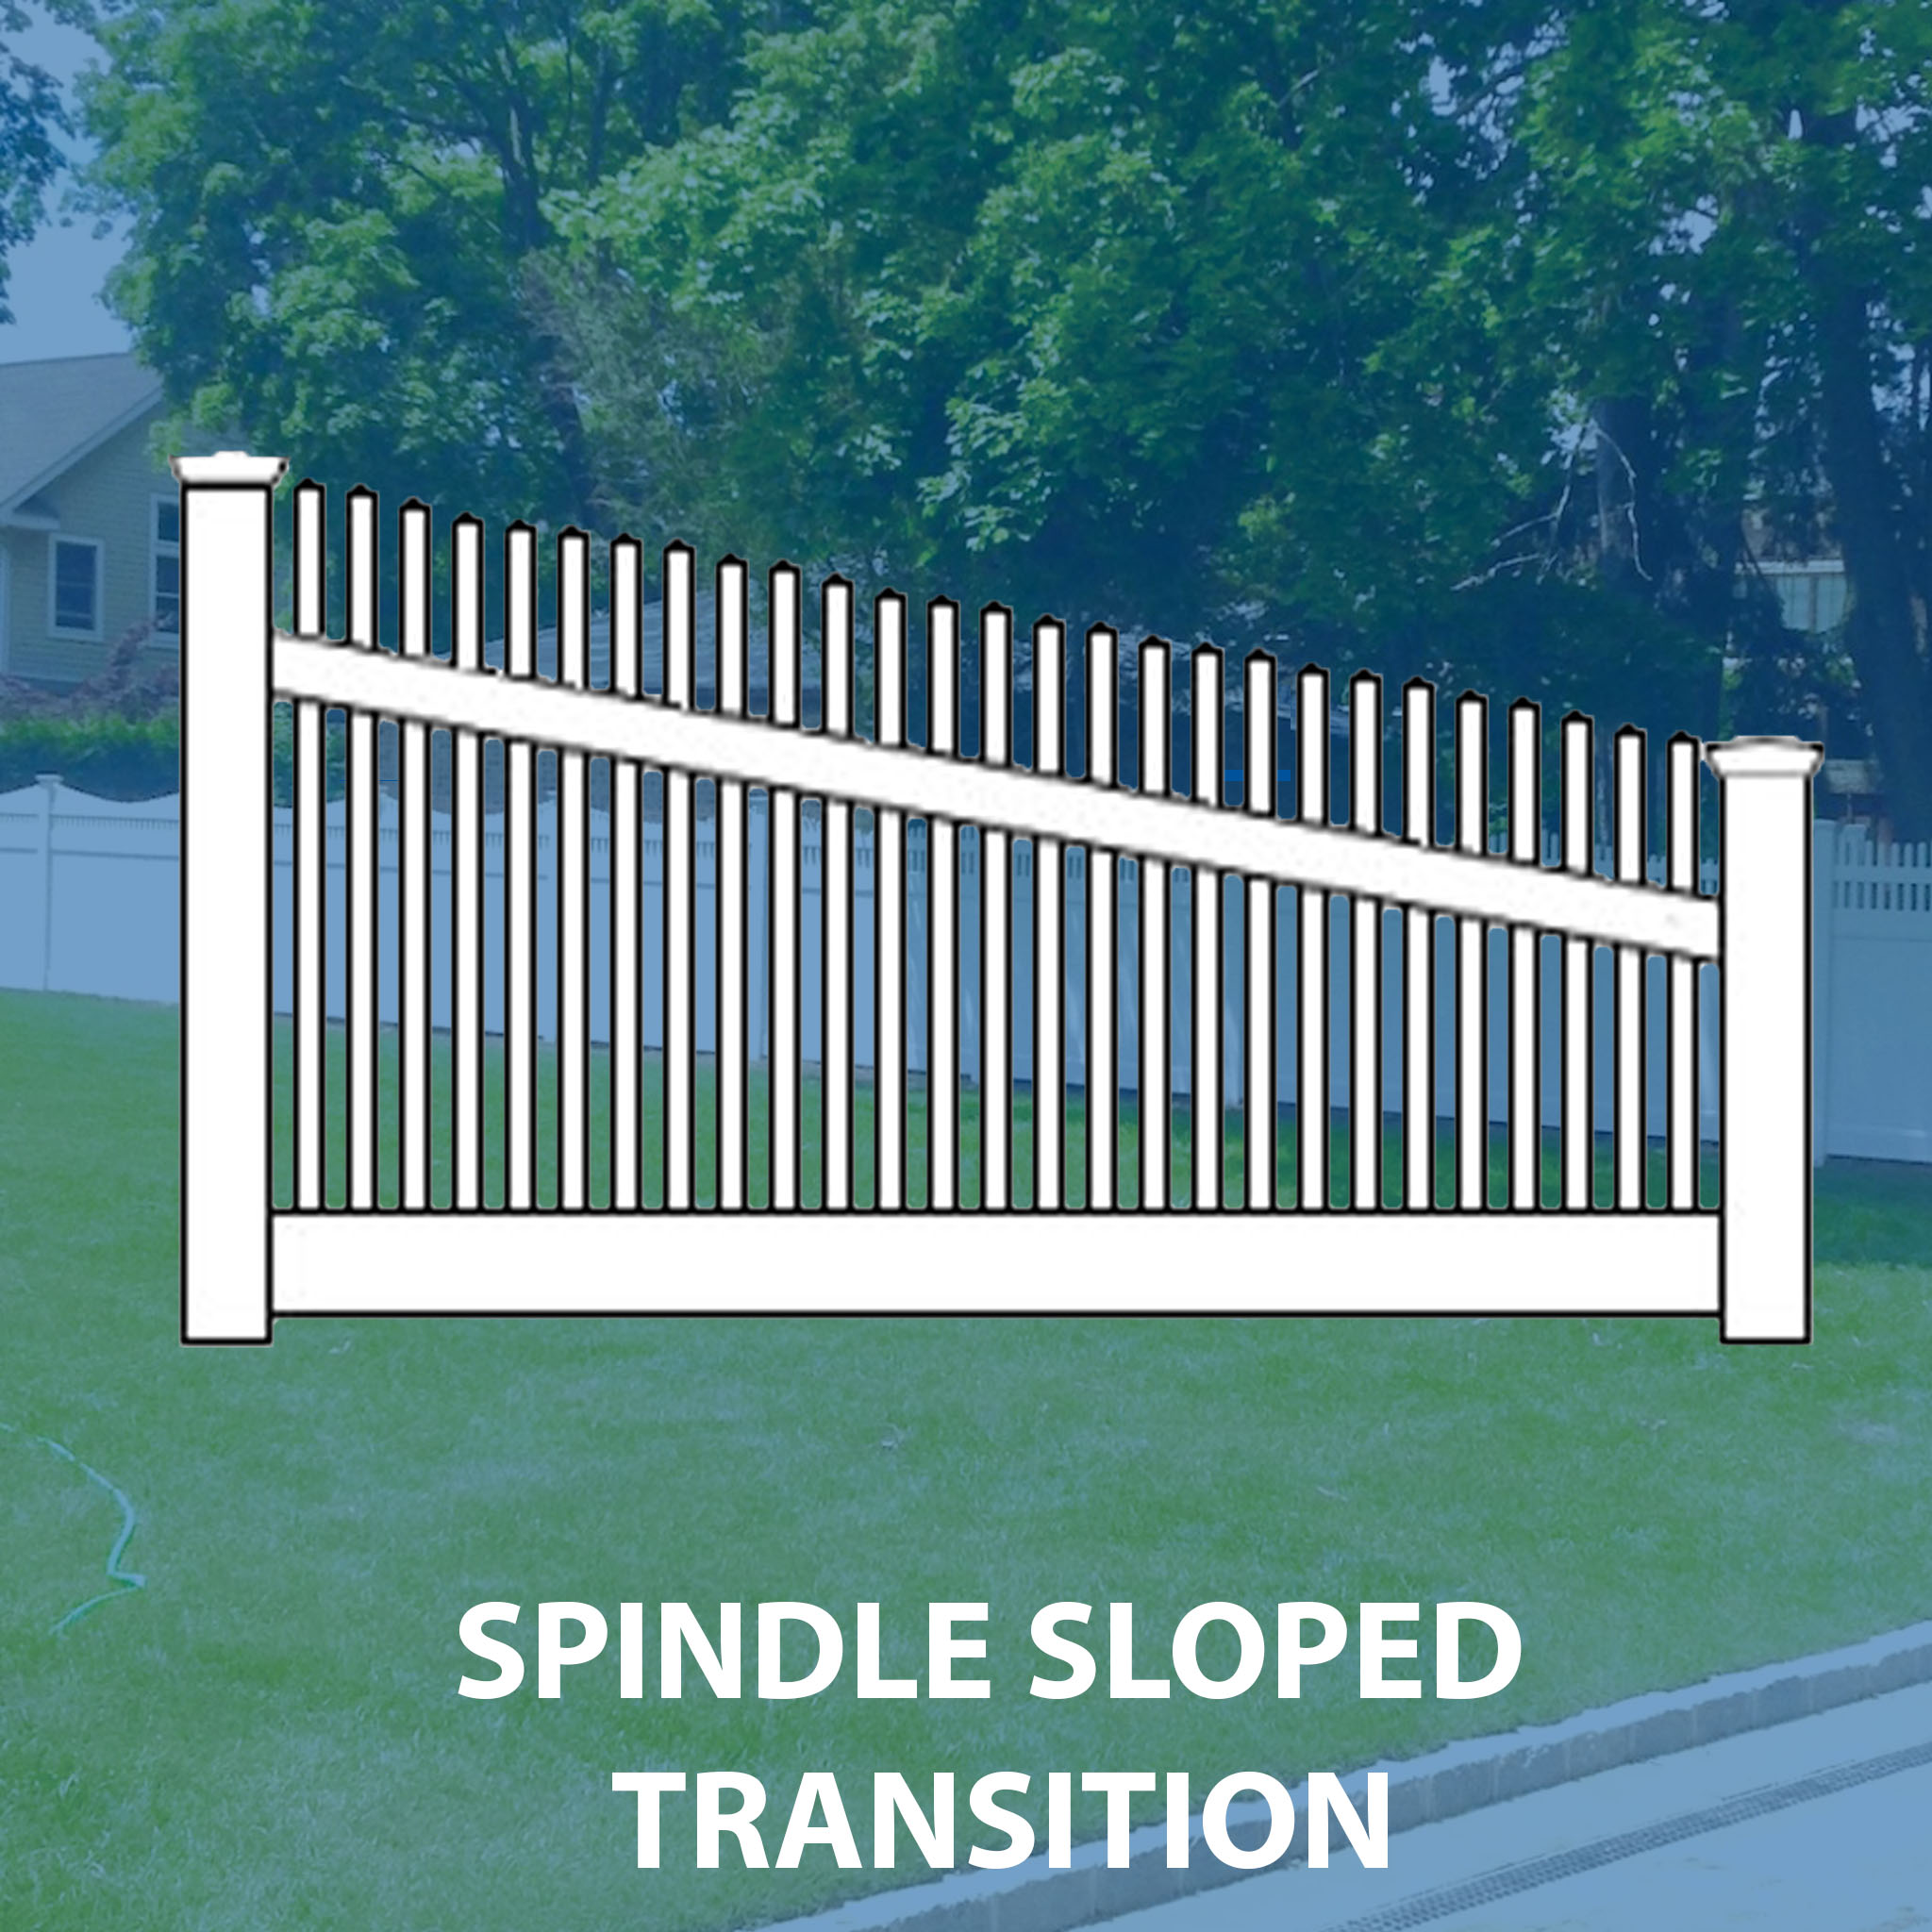 Transition Sections Quality Fence Usa Gate For Transitional Putting Up Electric Spindle